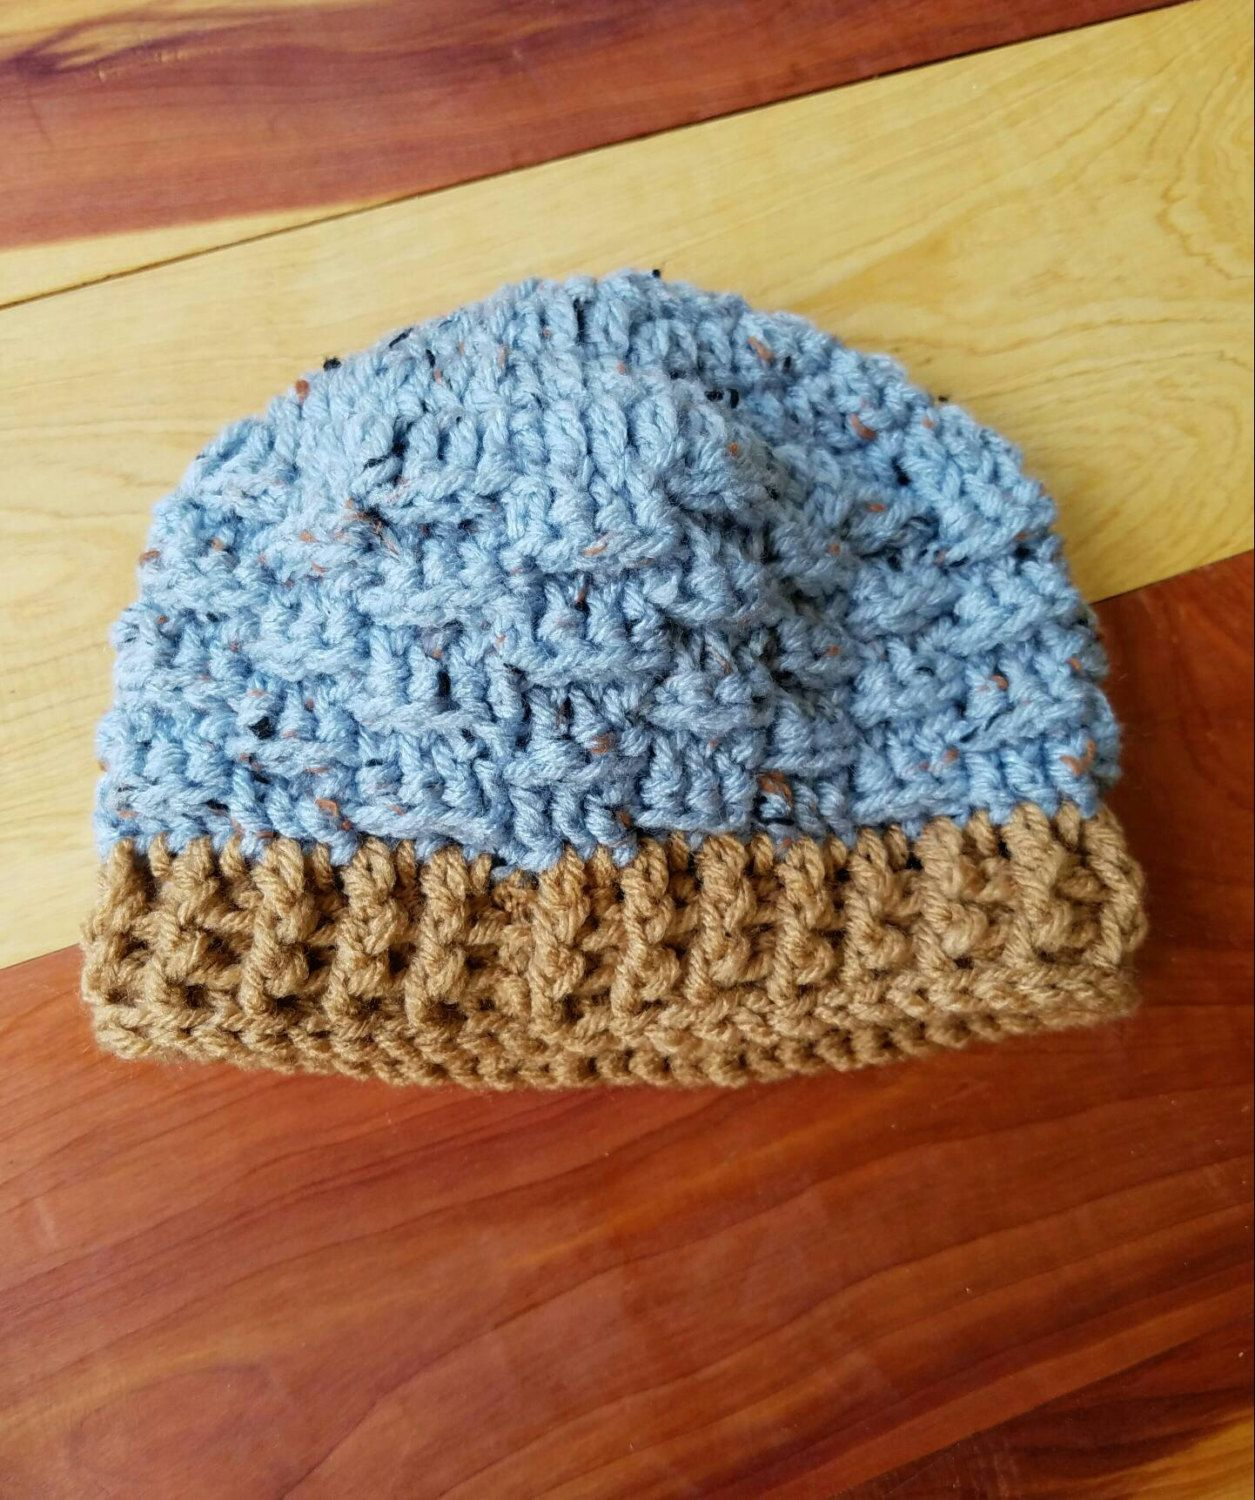 7bc4a6a8d28 SALE Baby Boy s Basket Weave Crocheted Hat. Size 6-12 Months